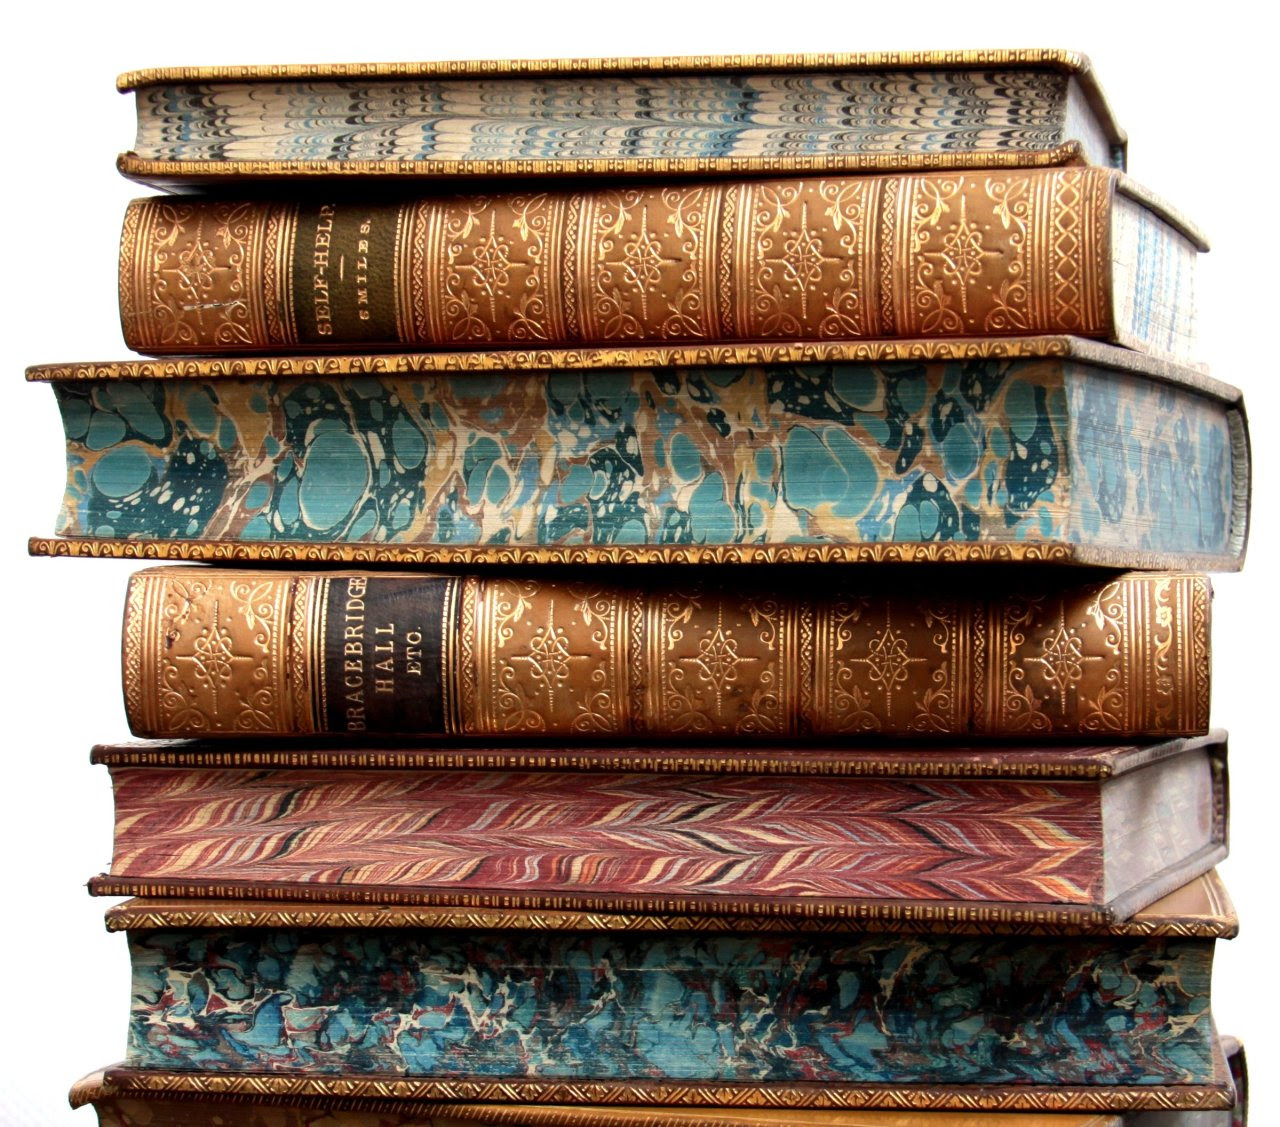 michaelmoonsbookshop:  19th century leather bound books with marbled pages edges